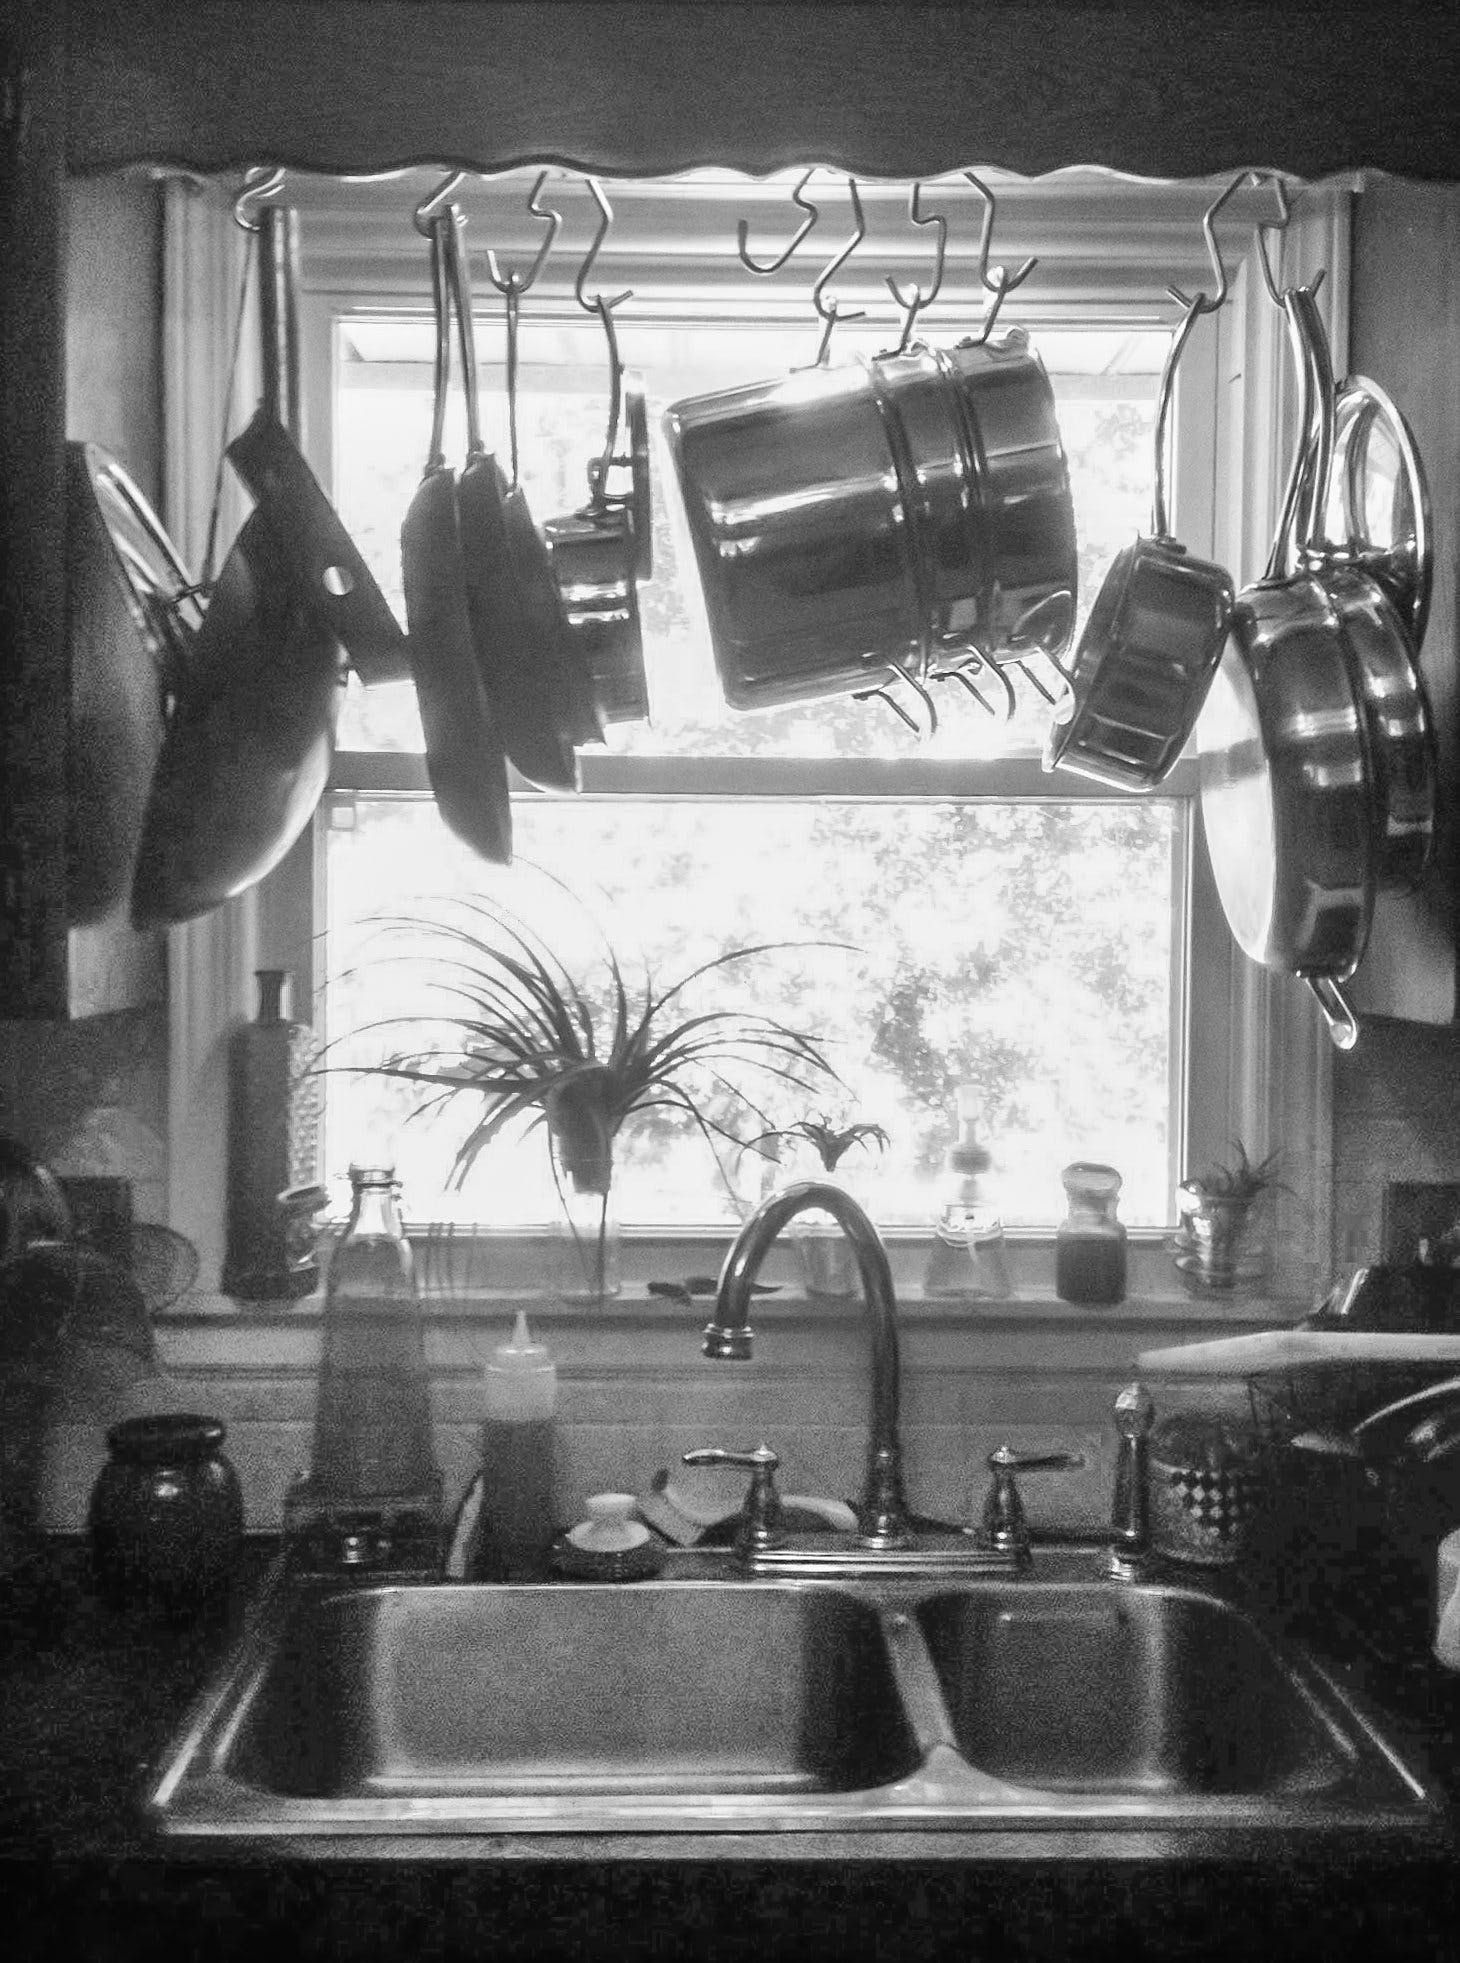 Hang Your Pot Rack Over the Sink and Let Your Pans Drip Dry ...